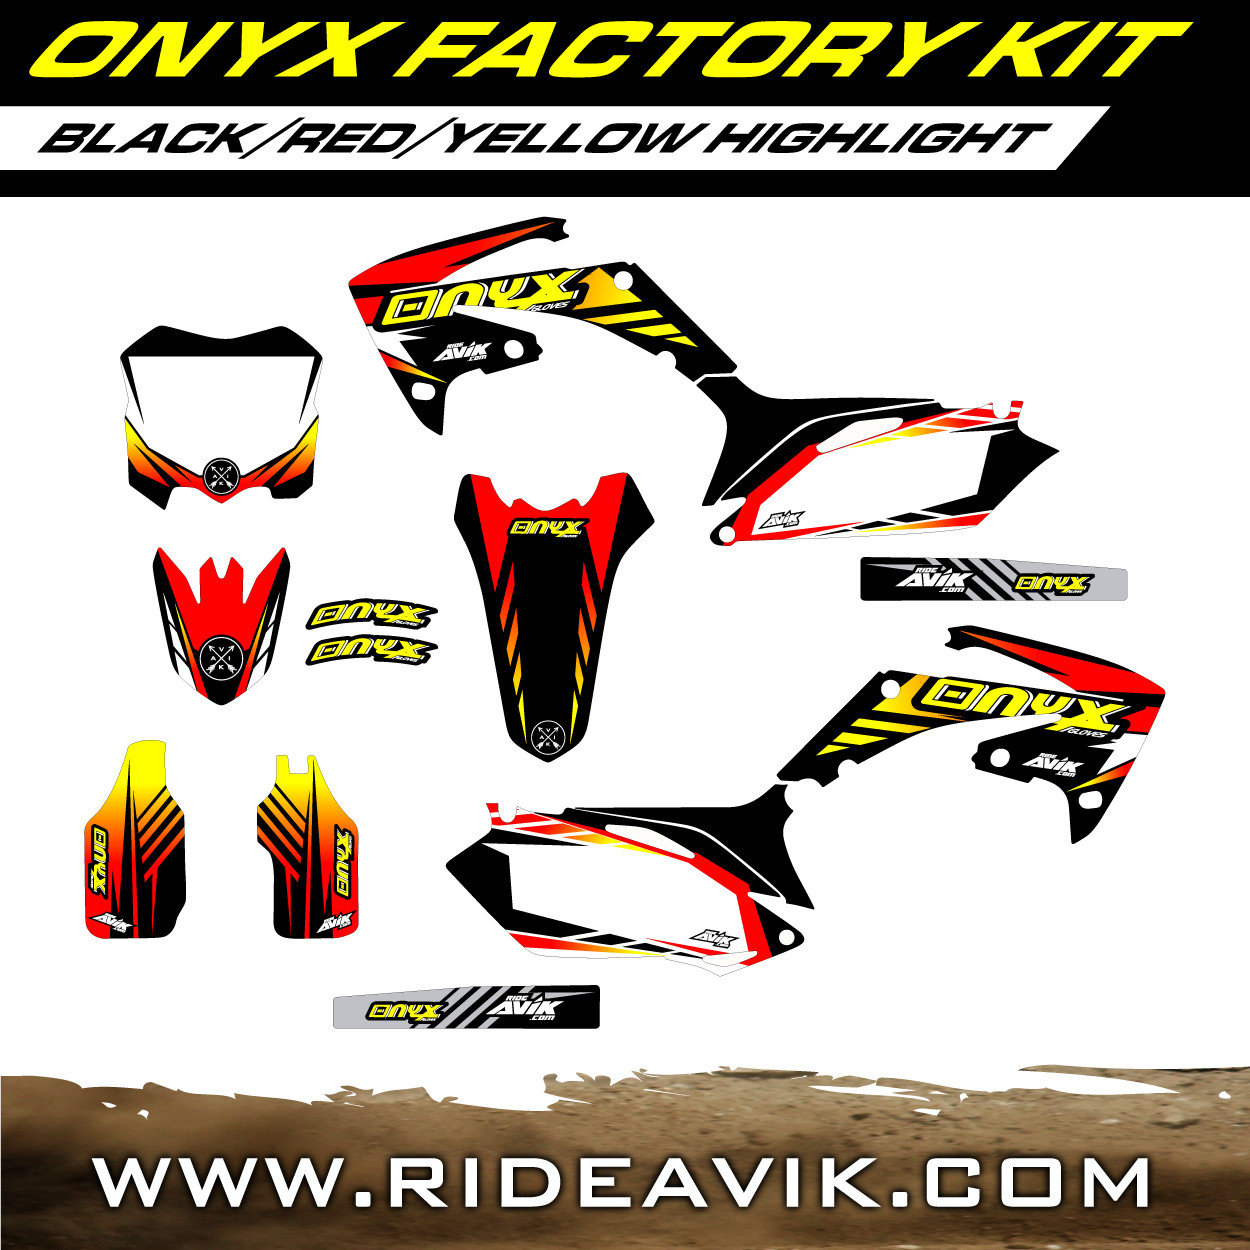 Honda Onyx Factory Kit Custom-Black/Red/Yellow